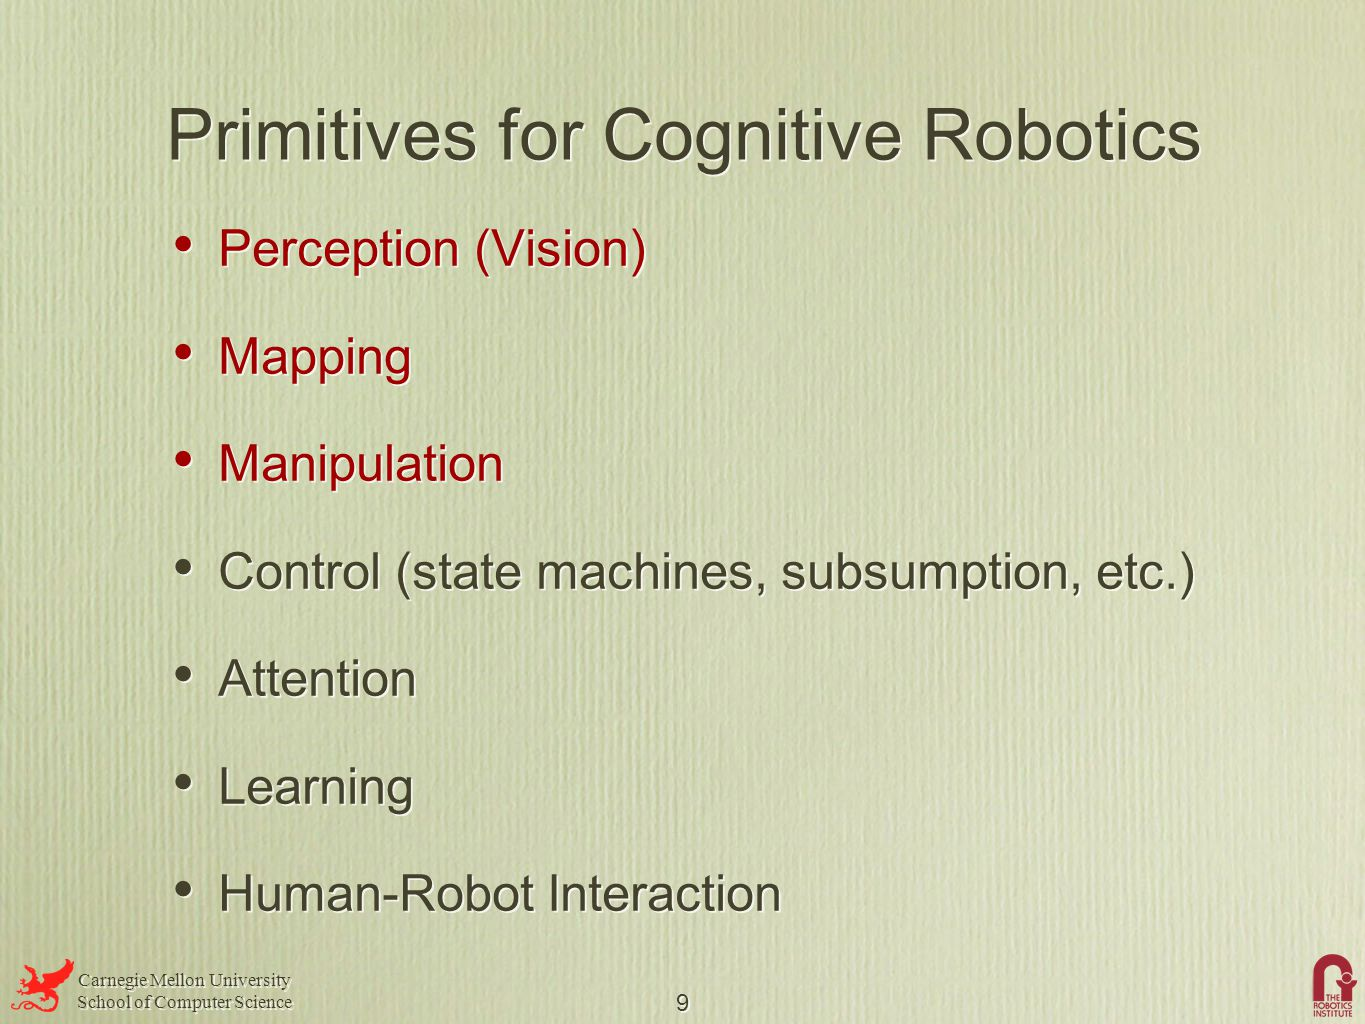 Carnegie Mellon University School of Computer Science Carnegie Mellon University School of Computer Science 9 Primitives for Cognitive Robotics Perception (Vision) Mapping Manipulation Control (state machines, subsumption, etc.) Attention Learning Human-Robot Interaction Perception (Vision) Mapping Manipulation Control (state machines, subsumption, etc.) Attention Learning Human-Robot Interaction